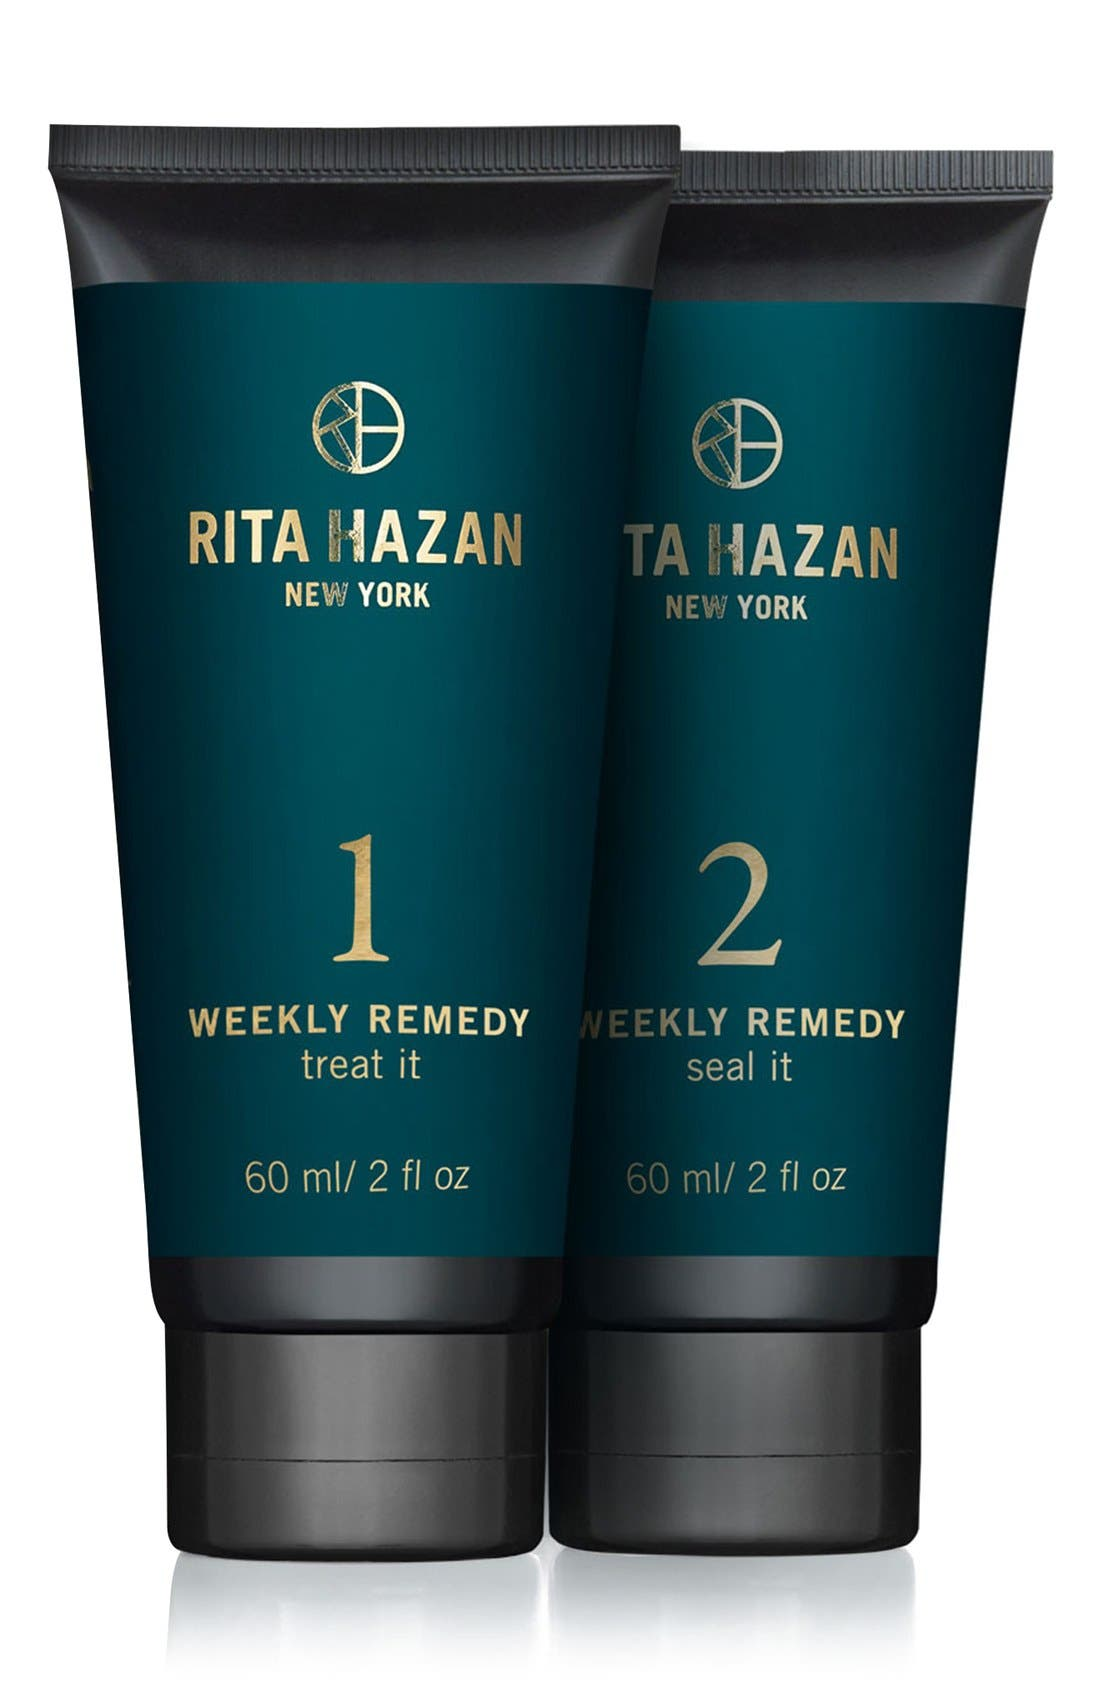 RITA HAZAN NEW YORK Weekly Remedy Treatment